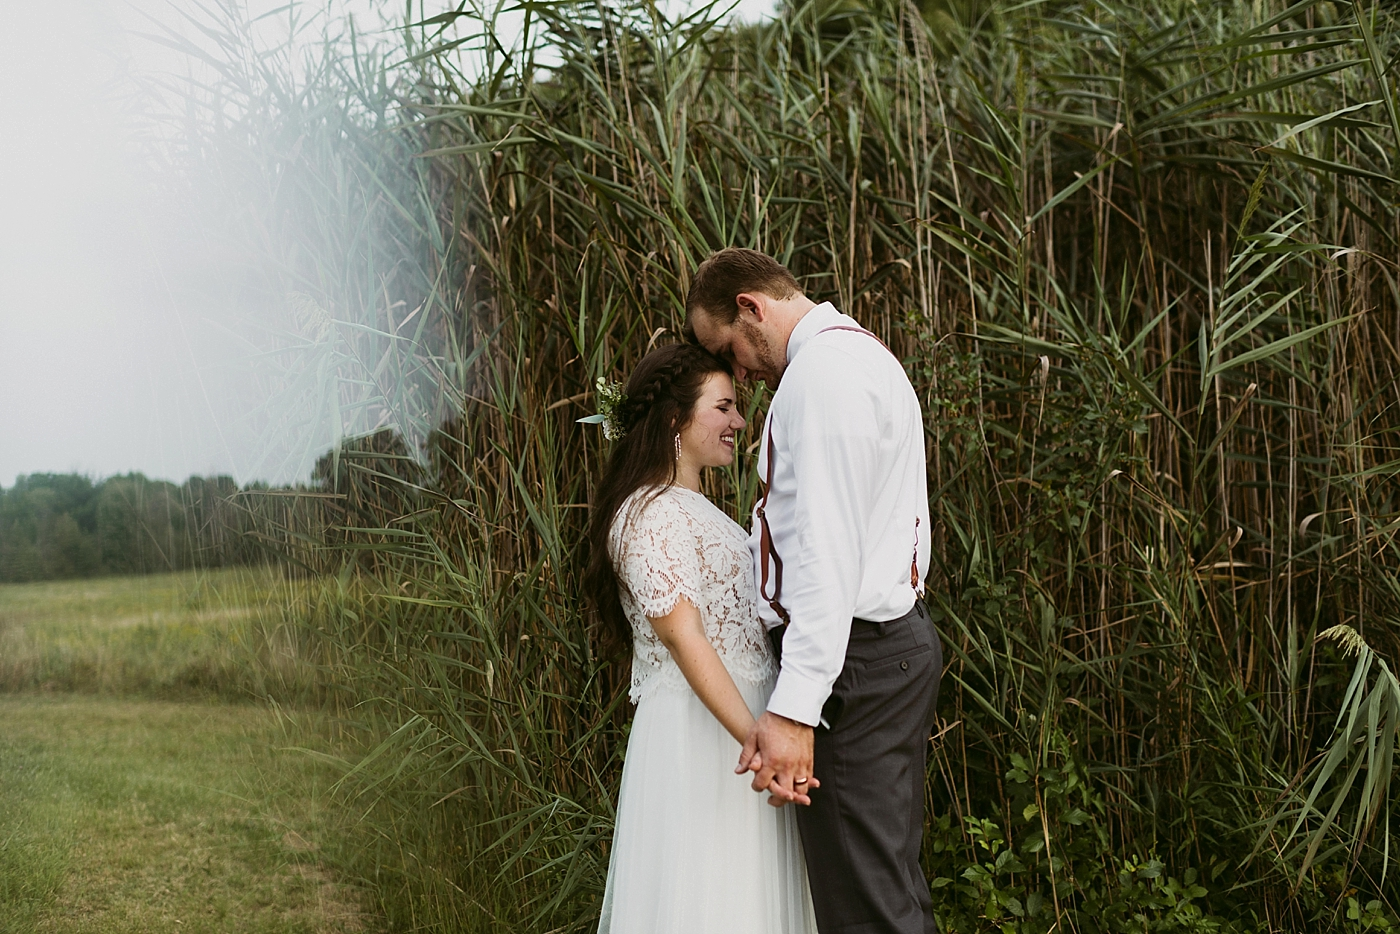 Meadow-Elopement-Ashley+Ben_MJPHOTO2018-200.jpg